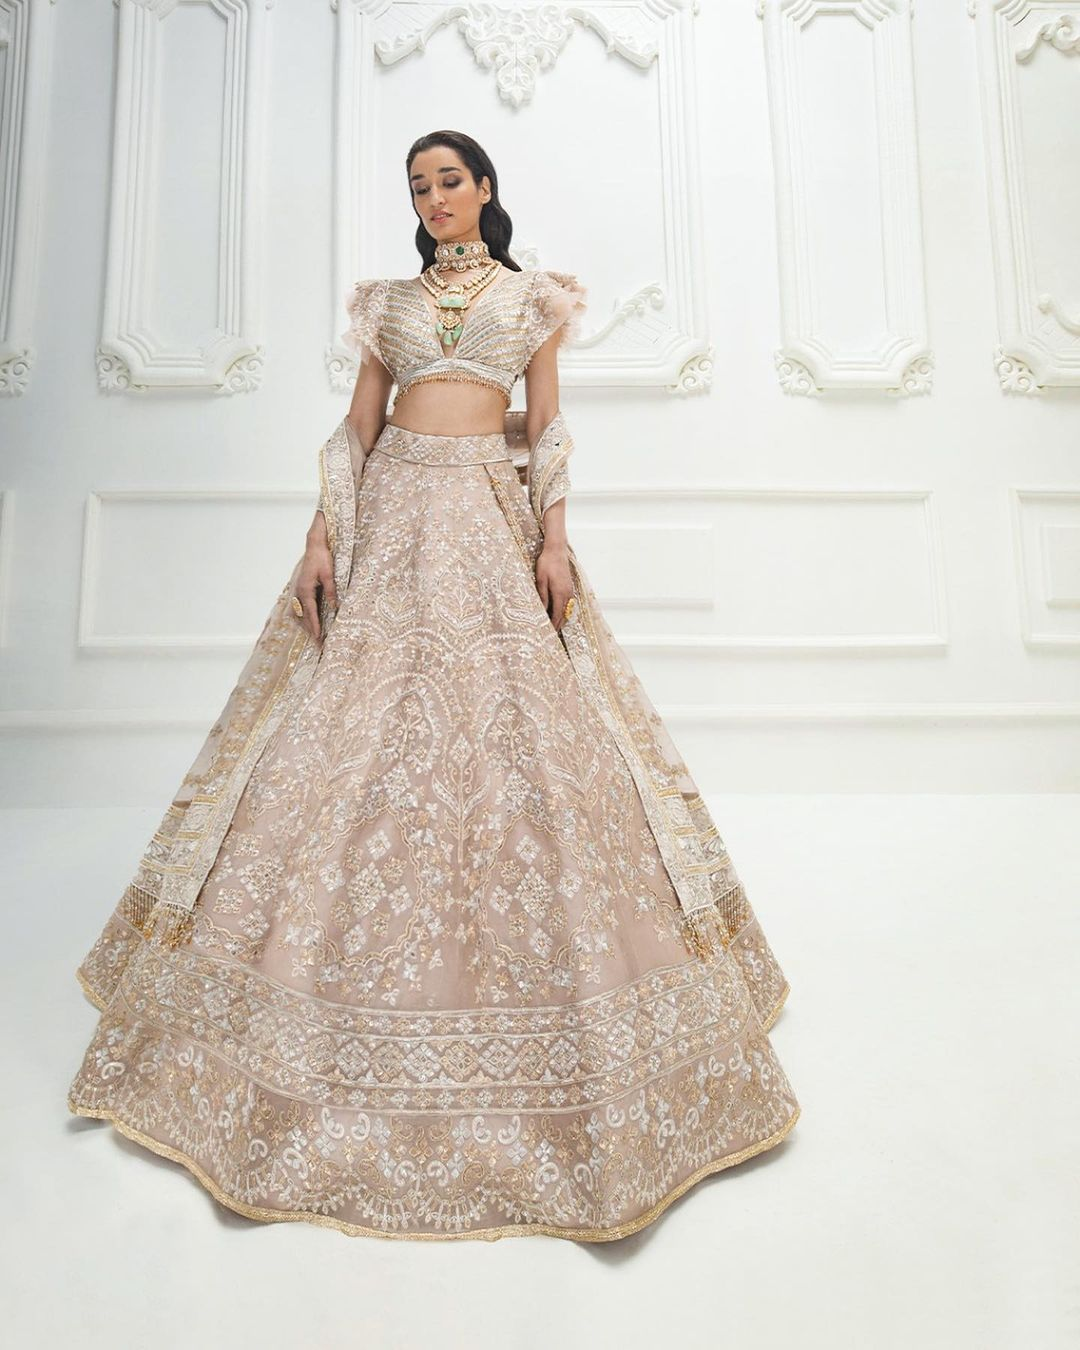 Adorn yourself in Rose honey celestial volumes divine pleated winged bodice extravagant ornaments like vintage zari textured sequins and metallic beads on floral #Tabān threadwork. 2021-06-03